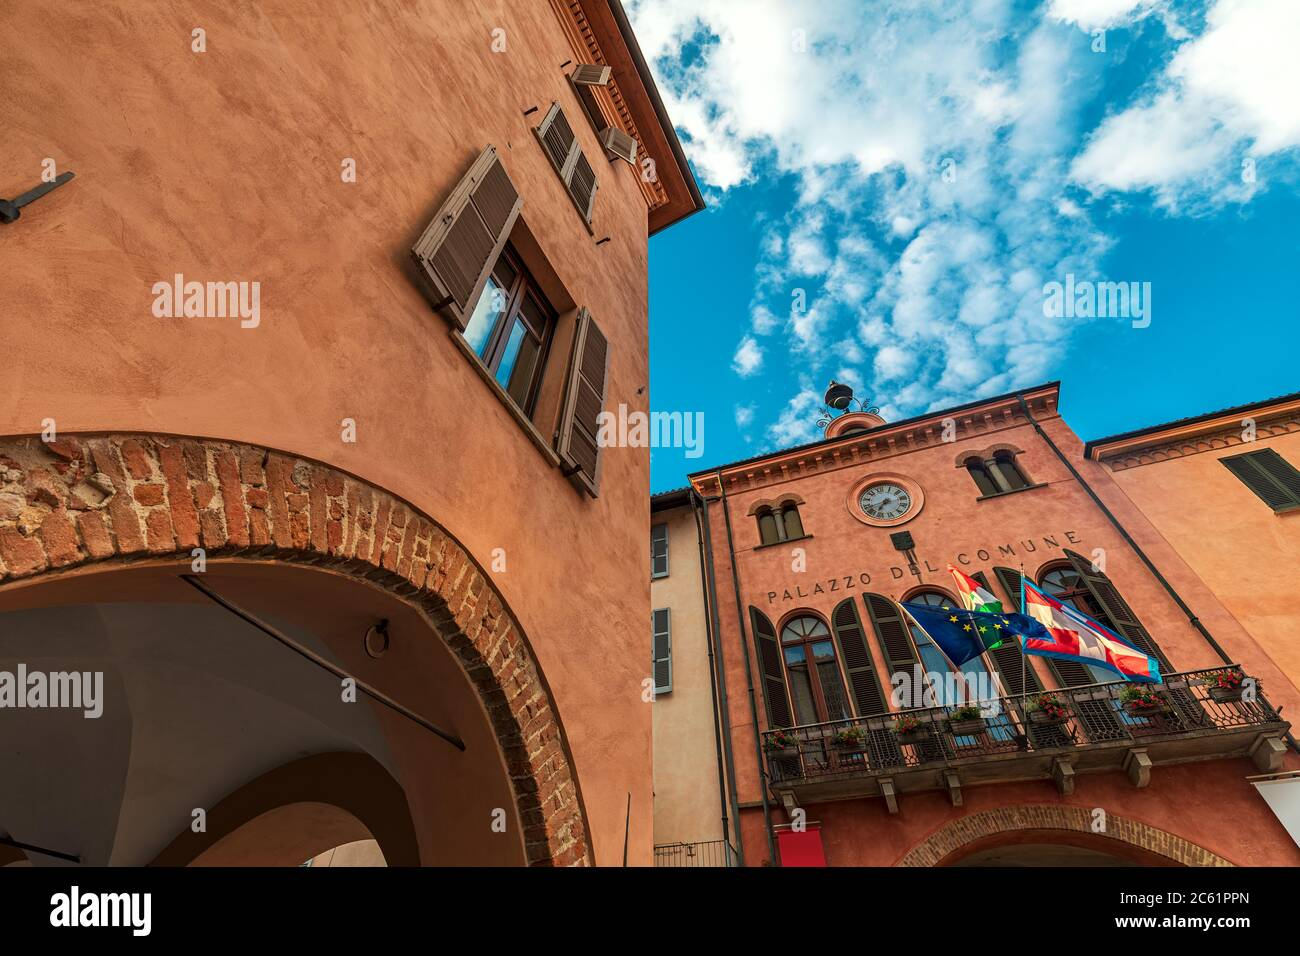 Old historic house and town hall with balcony, flags and clock under beautiful sky in Alba, Piedmont, Northern Italy (low angle view). Stock Photo